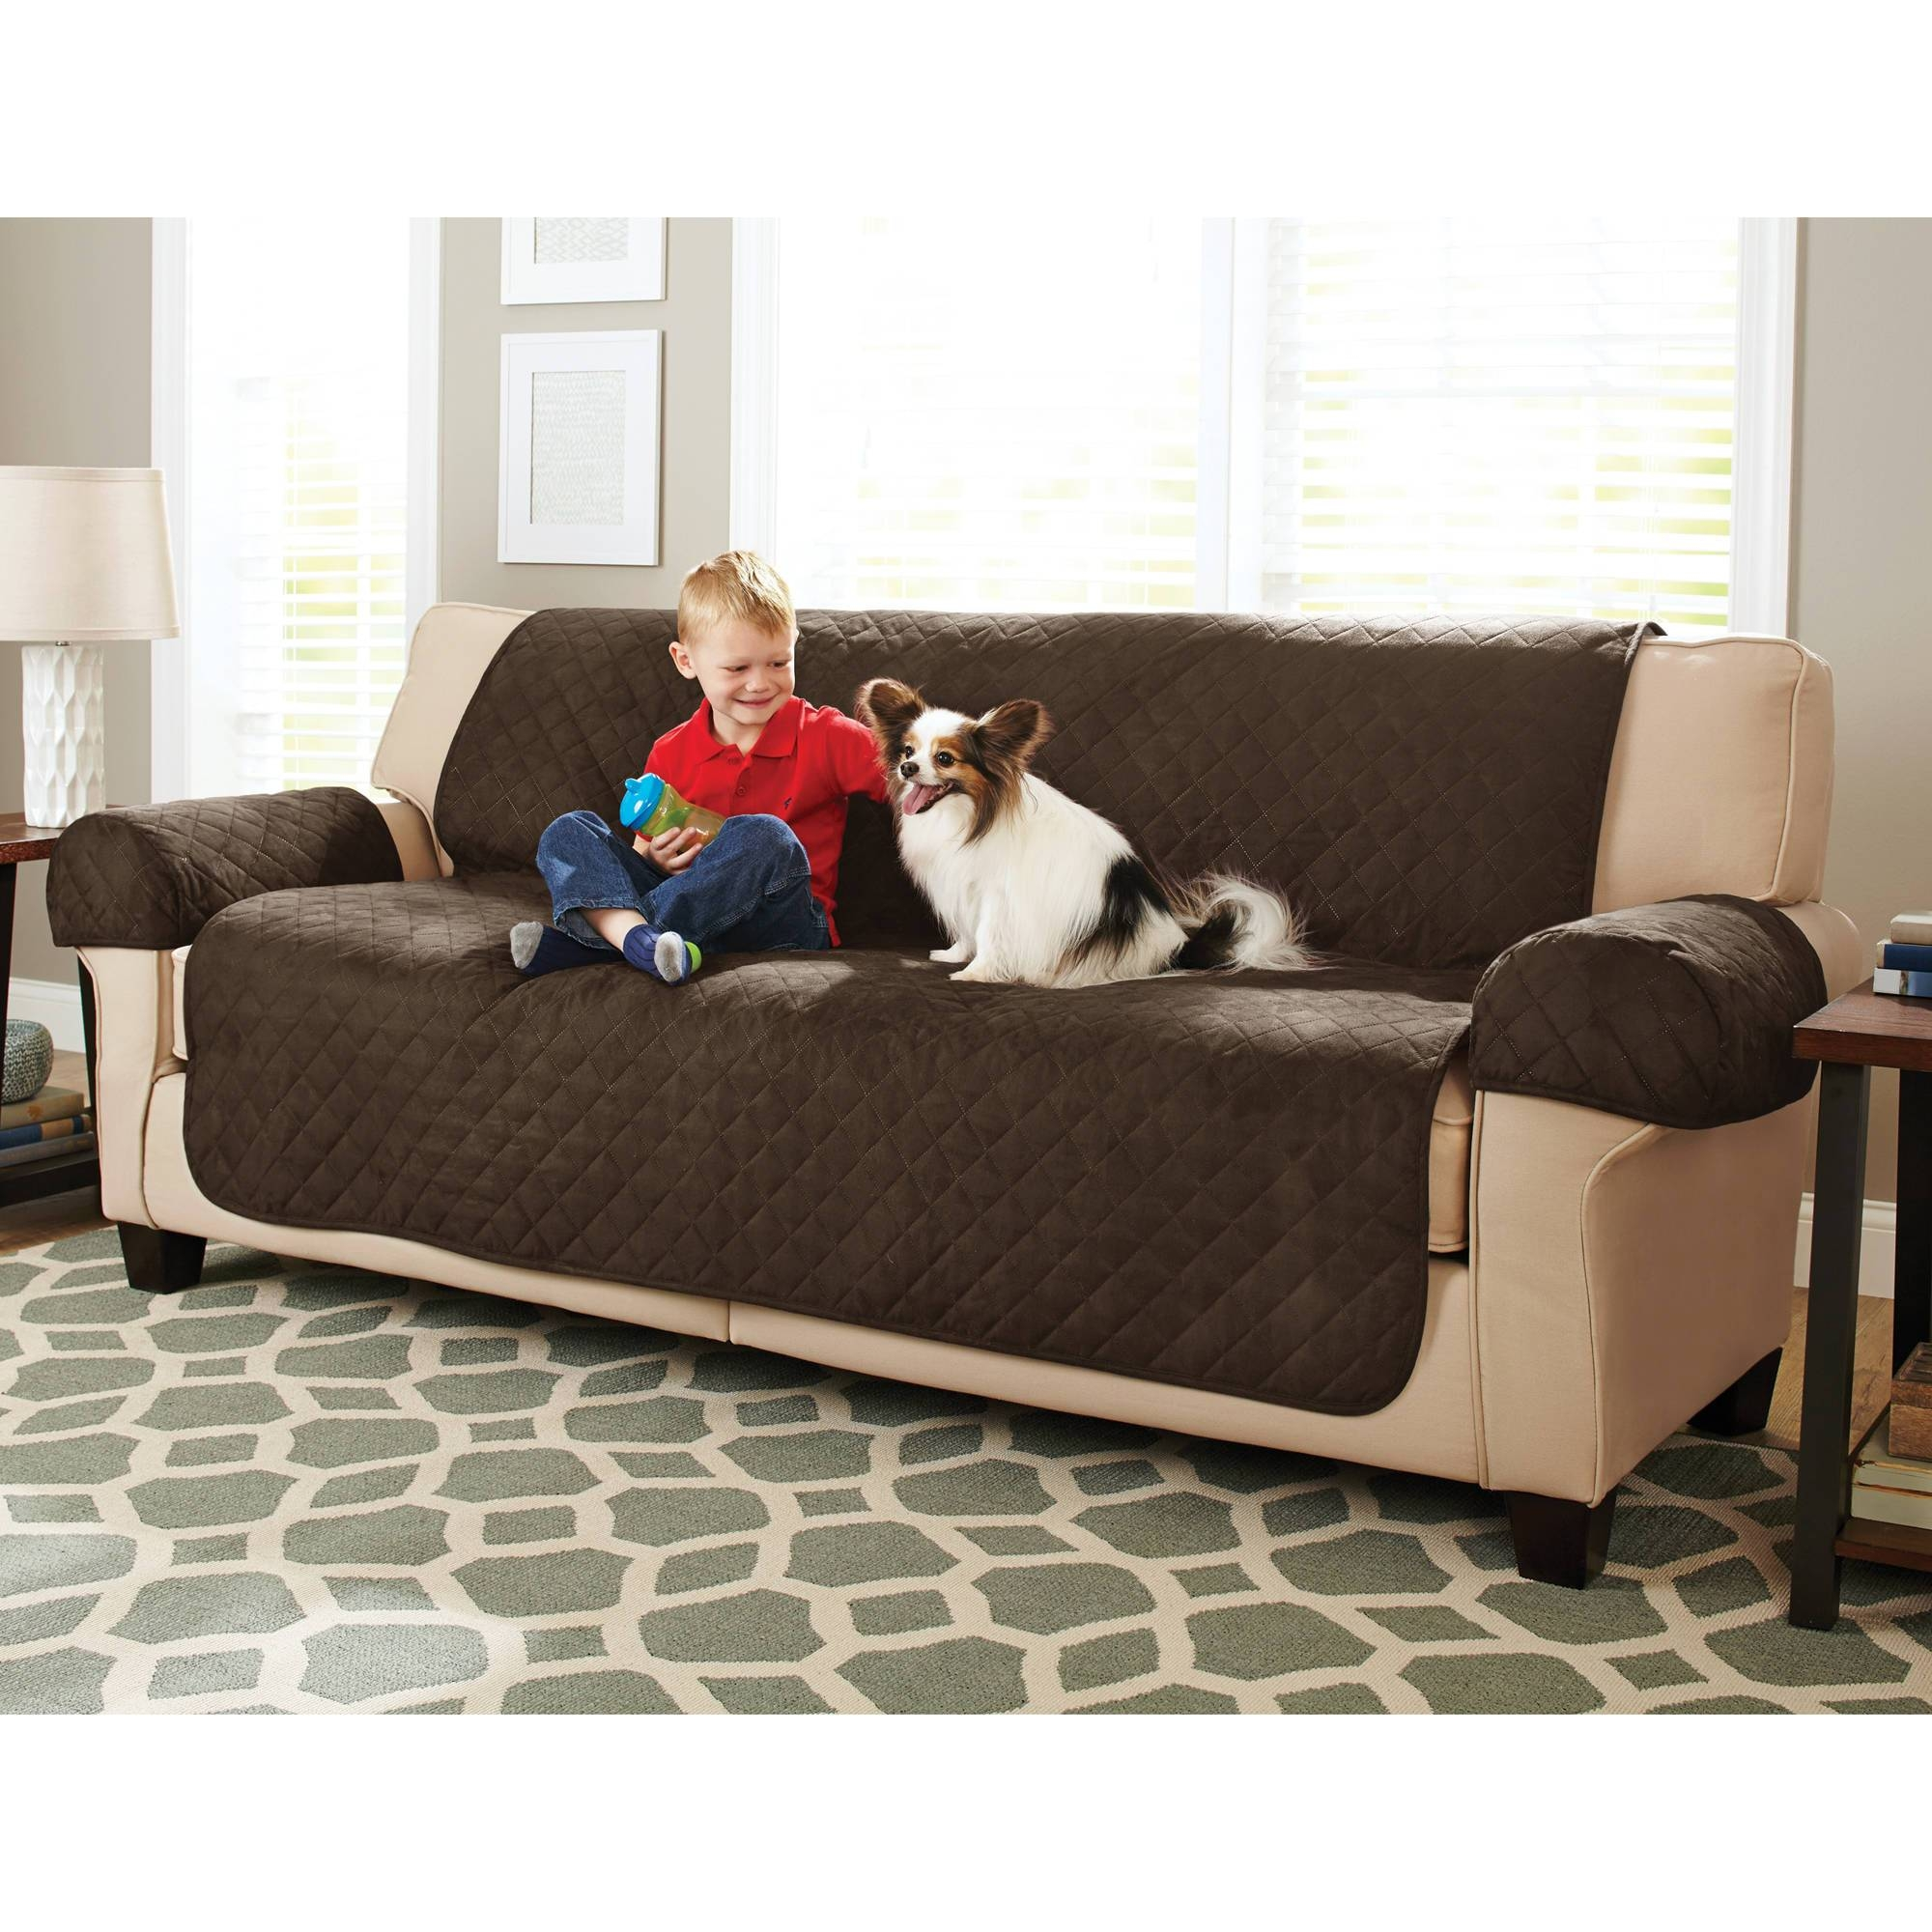 Better Homes And Gardens Waterproof Non-Slip Faux Suede Pet with Sofa Settee Covers (Image 3 of 30)